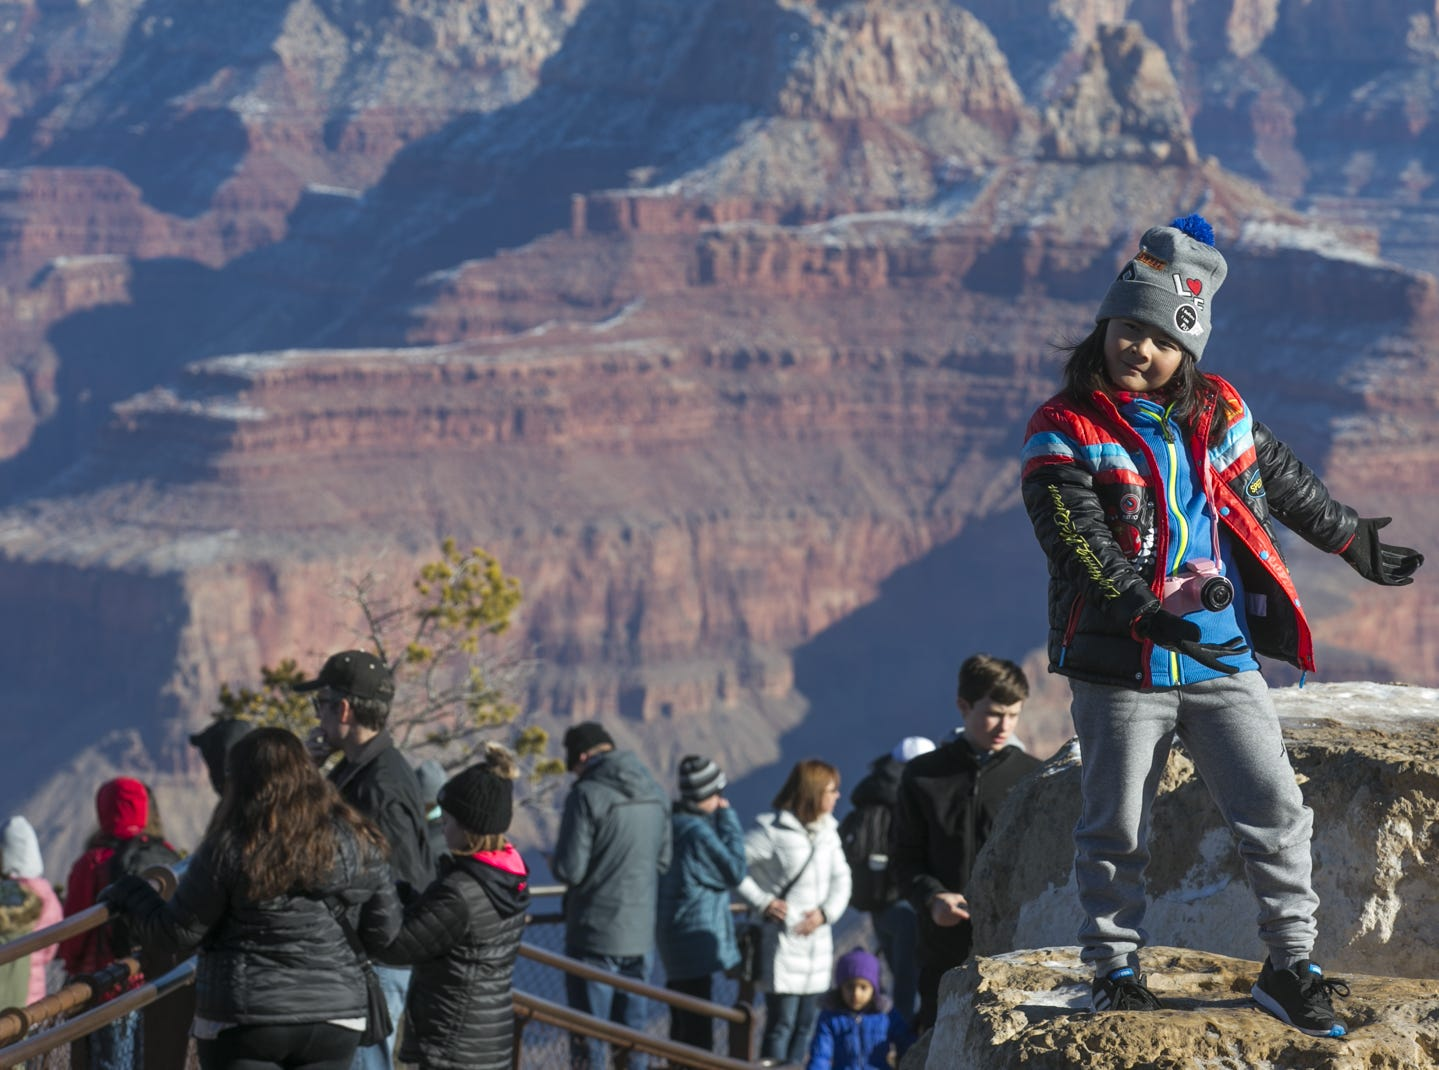 9-year-old Dylan La poses for a photo at Grand Canyon National Park on Jan. 4, 2019. The park was staffed at minimum capacity due to the government shutdown but retained much of its services due to an executive order issued by Arizona Gov. Doug Ducey to run the park with state funds in the event of a shutdown.